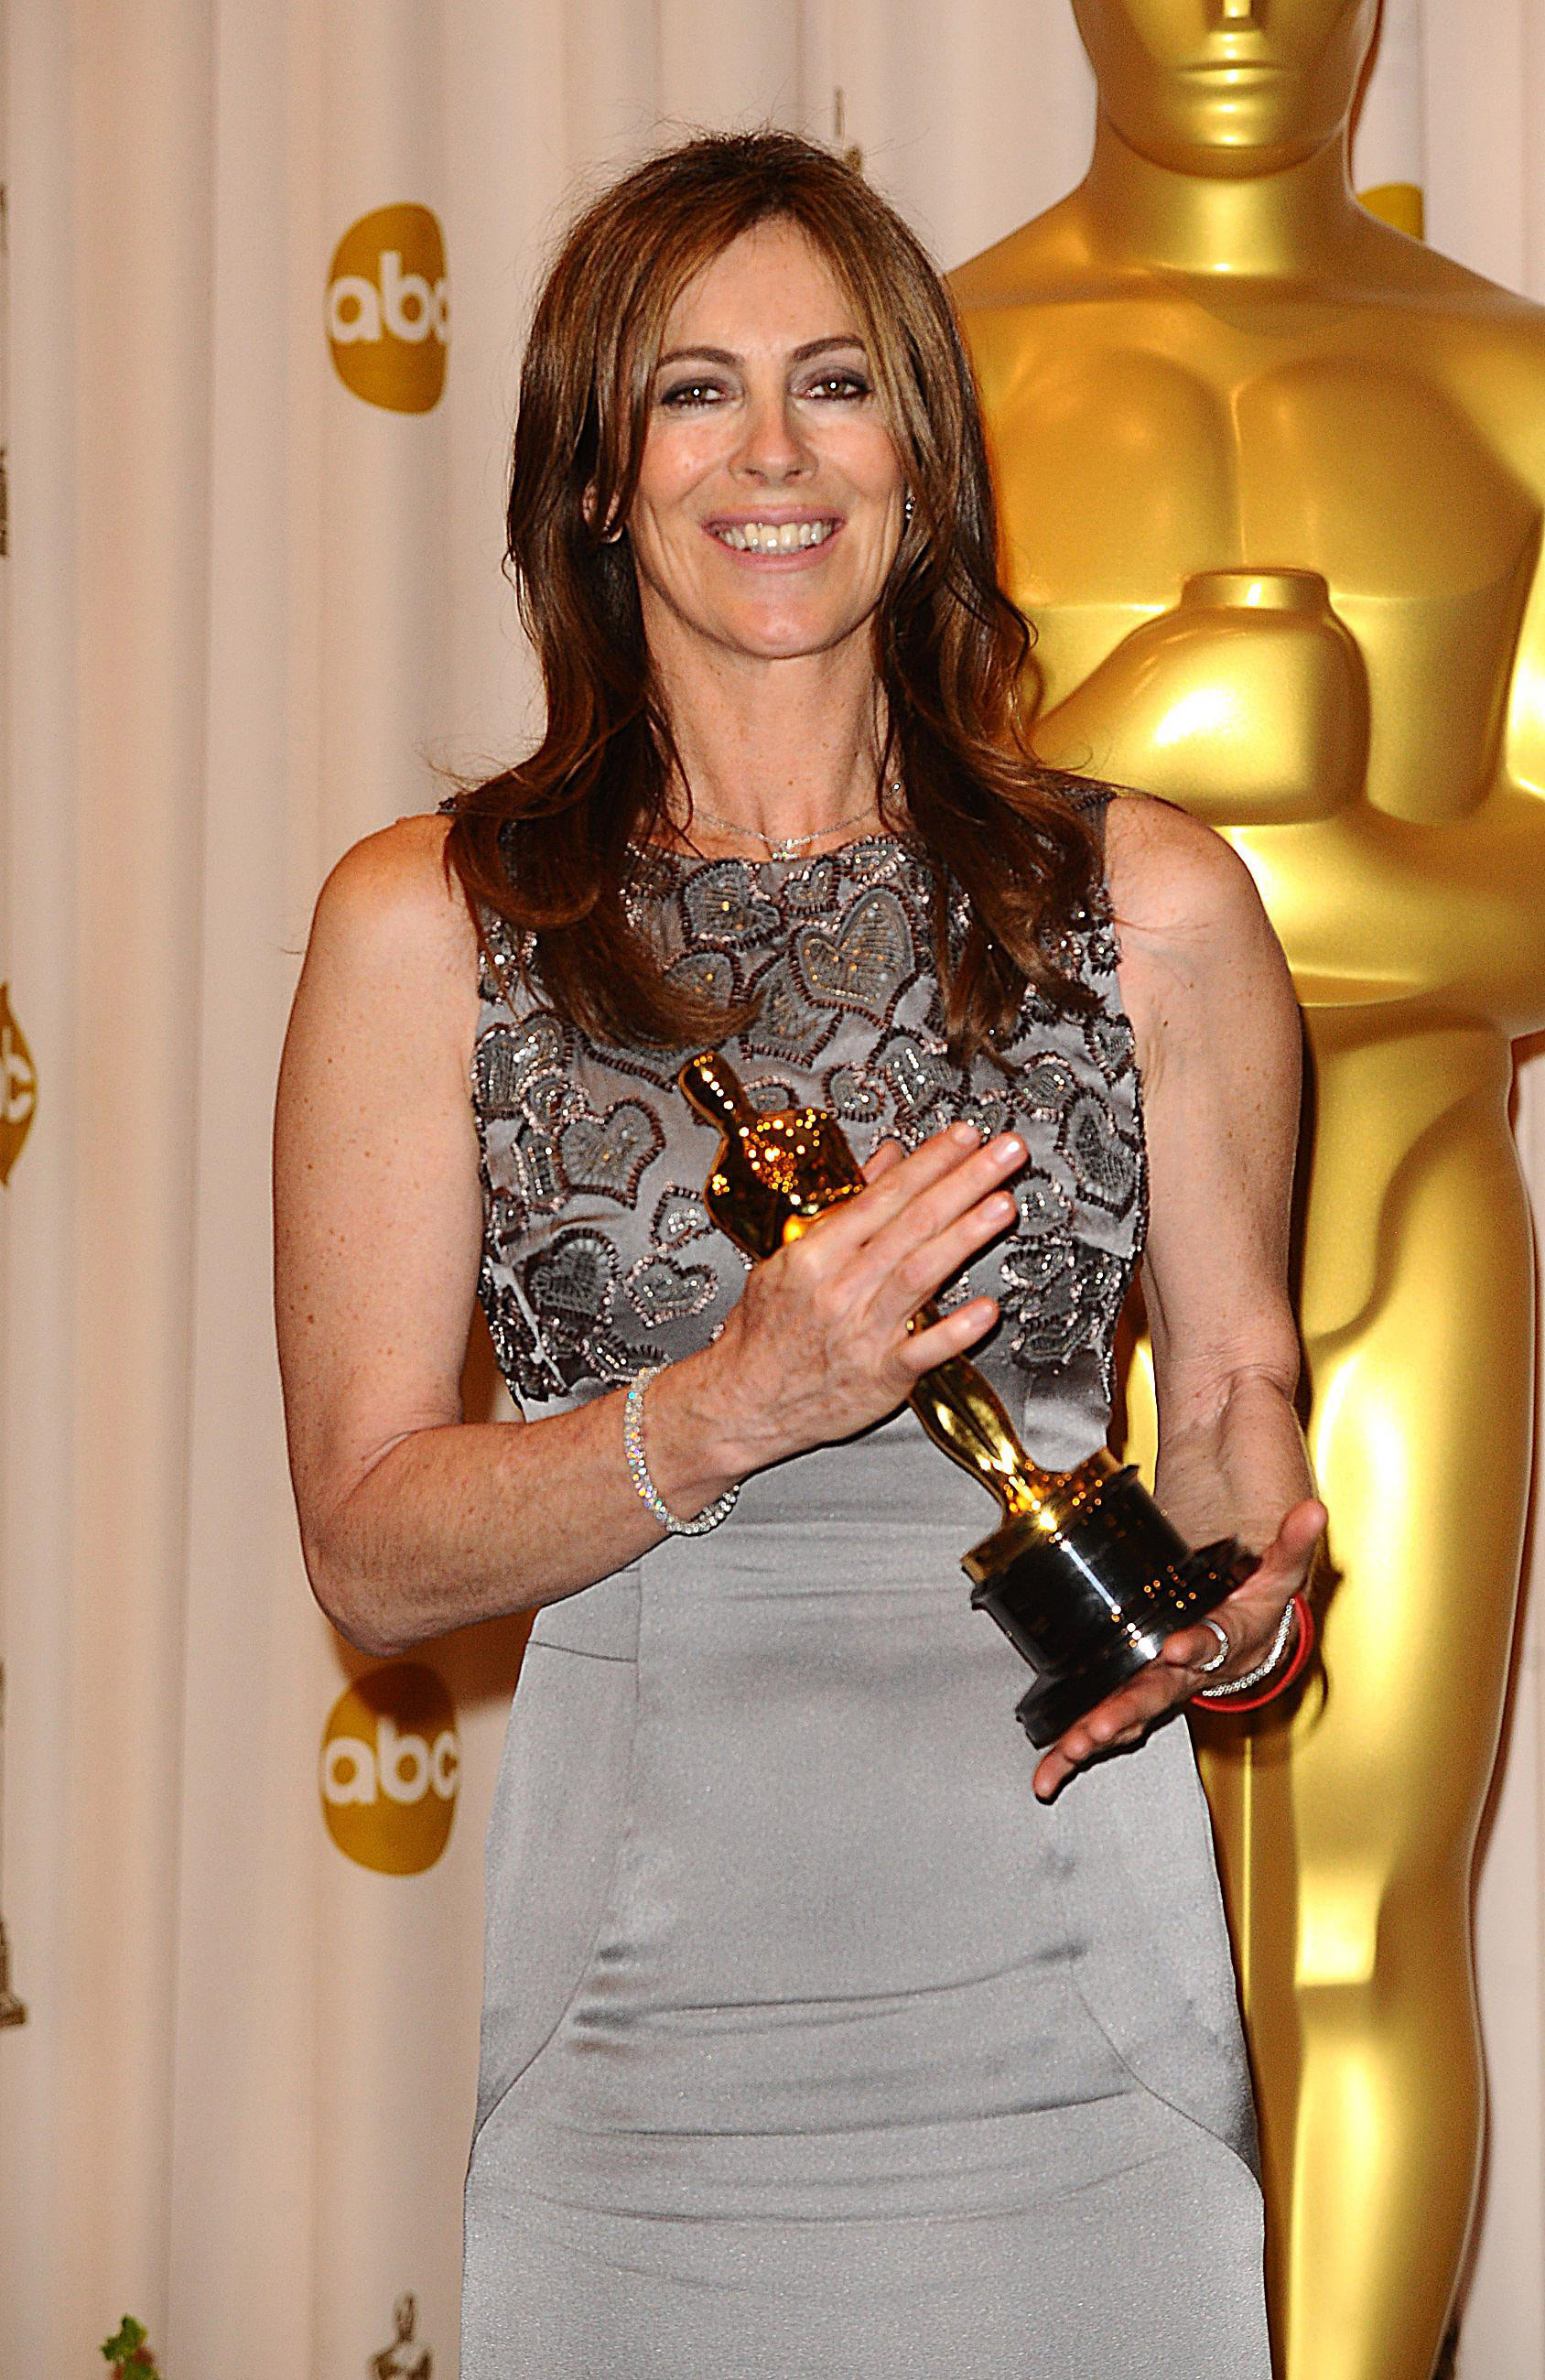 Kathryn Bigelow with her award for Achievement in Directing for The Hurt Locker at the 82nd Academy Awards at the Kodak Theatre, Los Angeles. PRESS ASSOCIATION Photo. Picture date: Sunday March 7, 2010. See PA story SHOWBIZ Oscars. Photo credit should read: Ian West/PA Wire